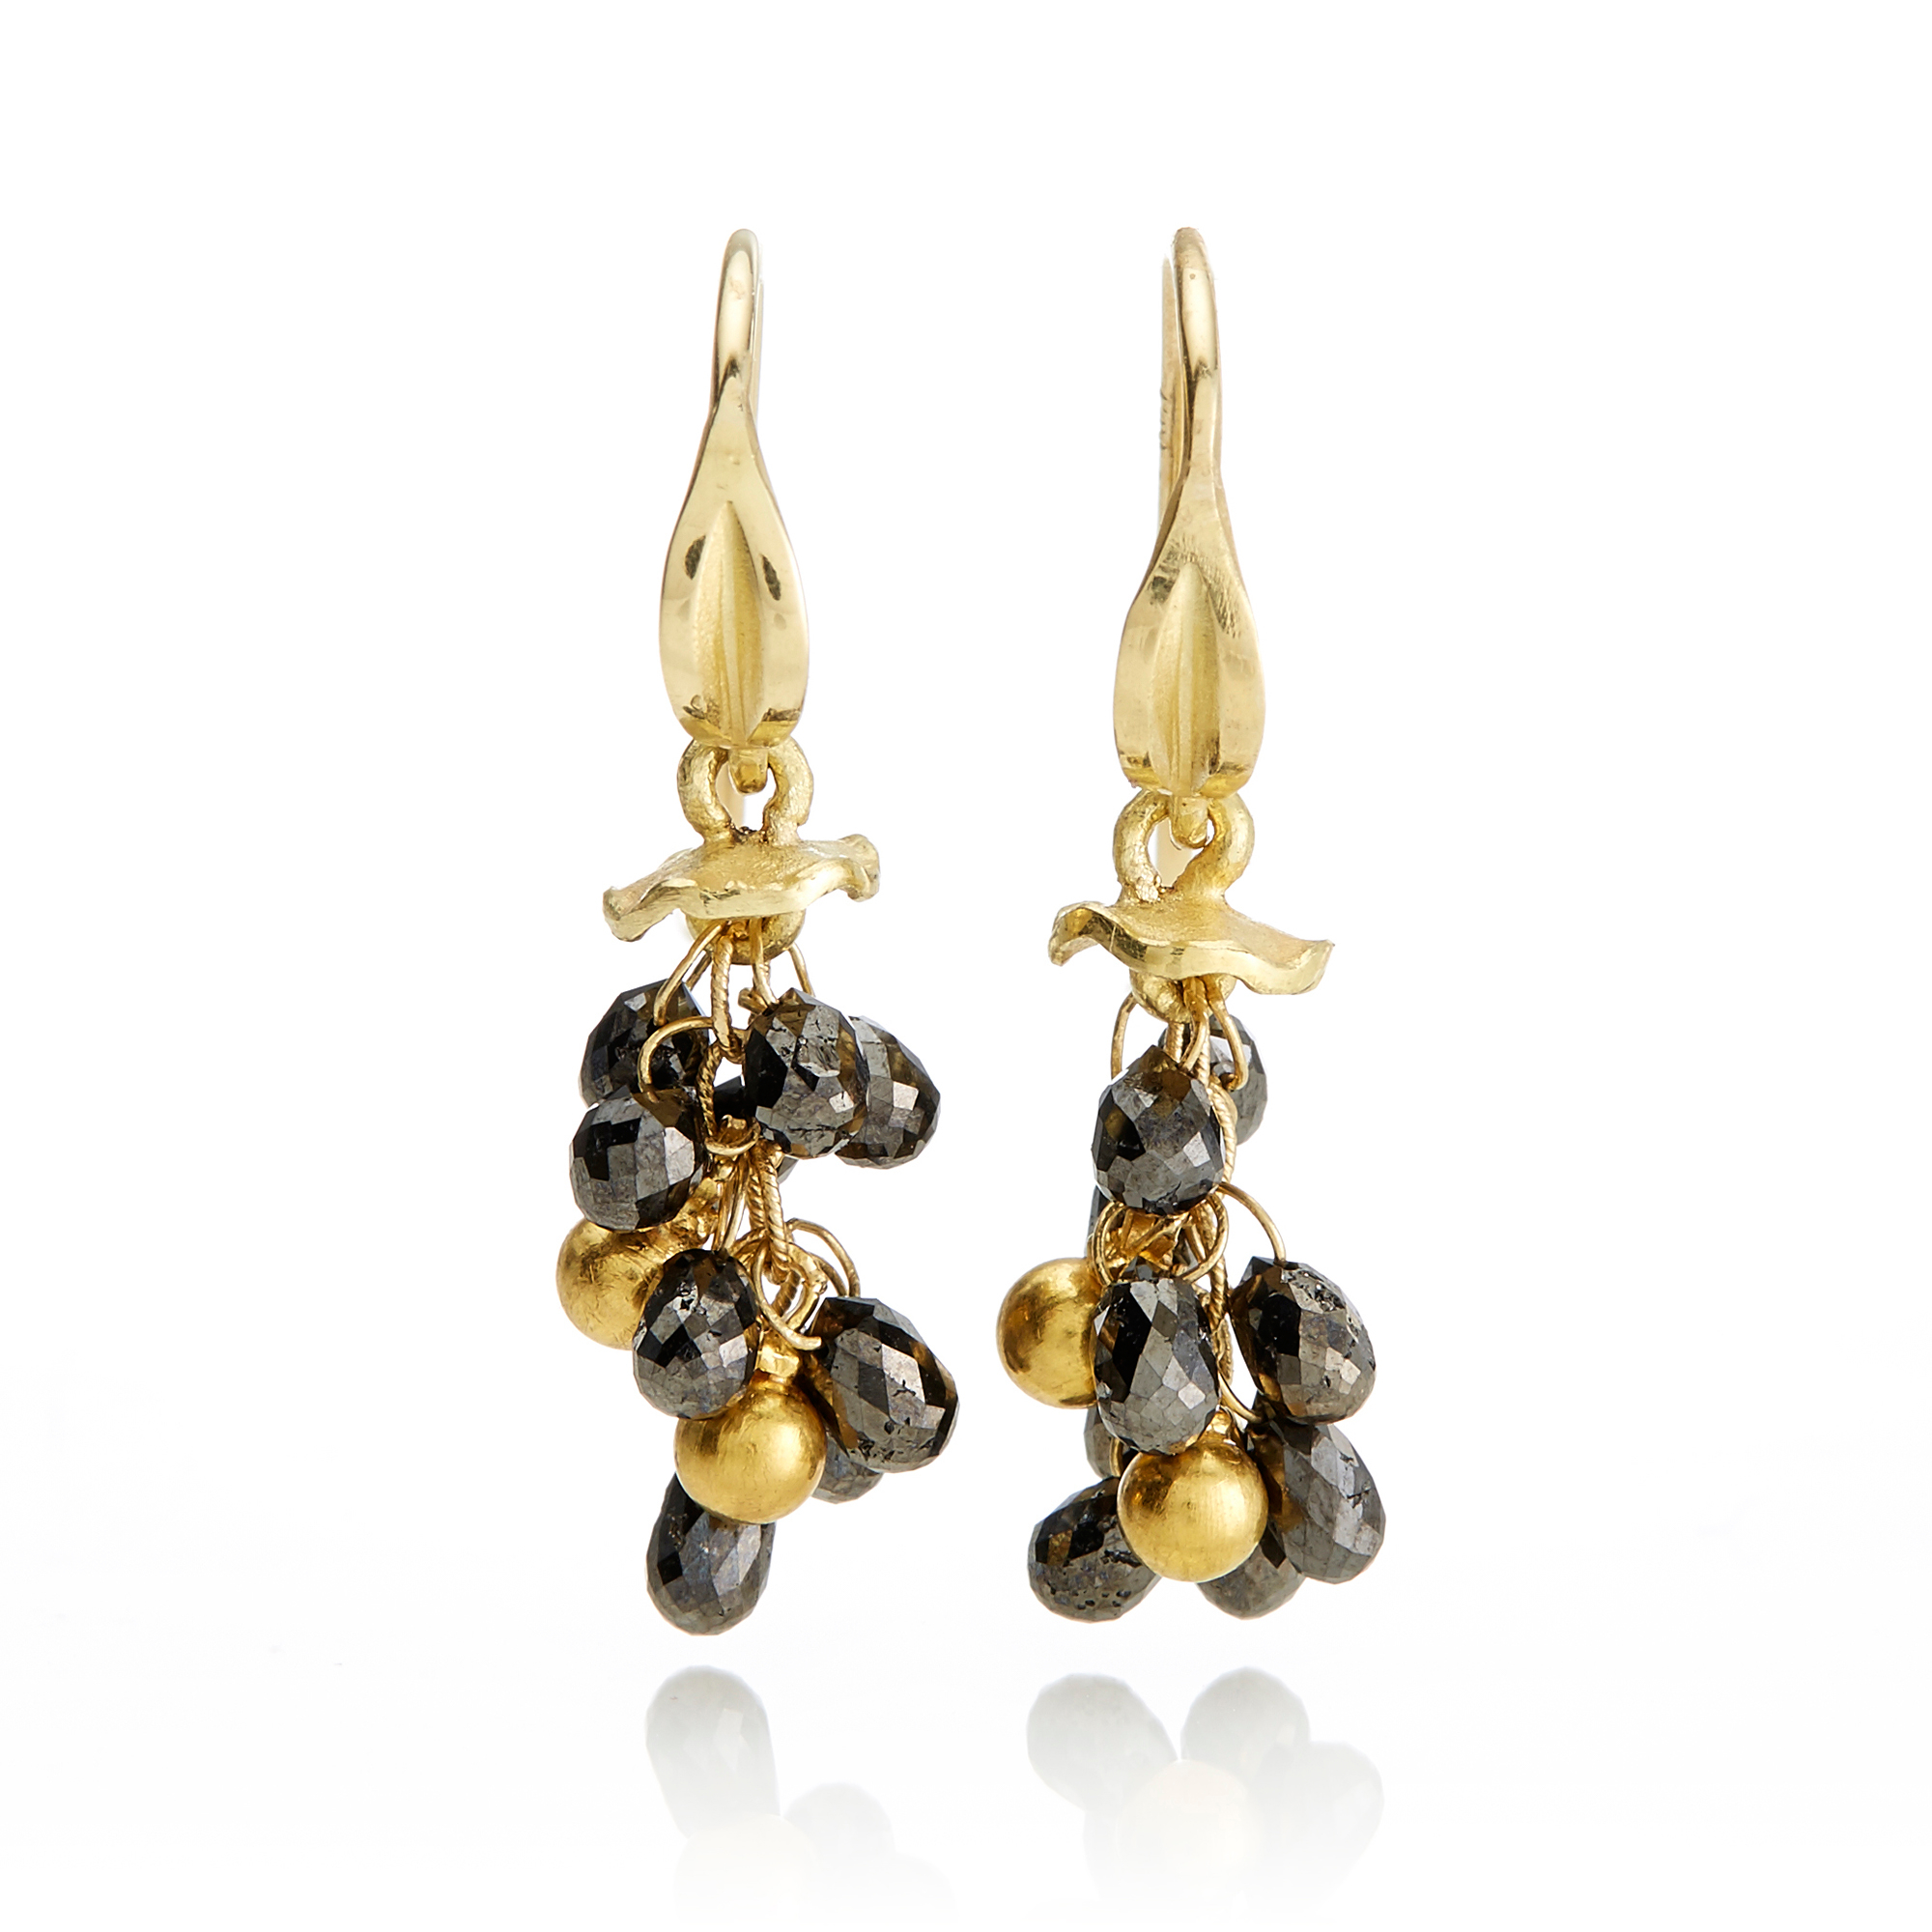 Barbara Heinrich Black Diamond Briolette Earrings With Gold Drops